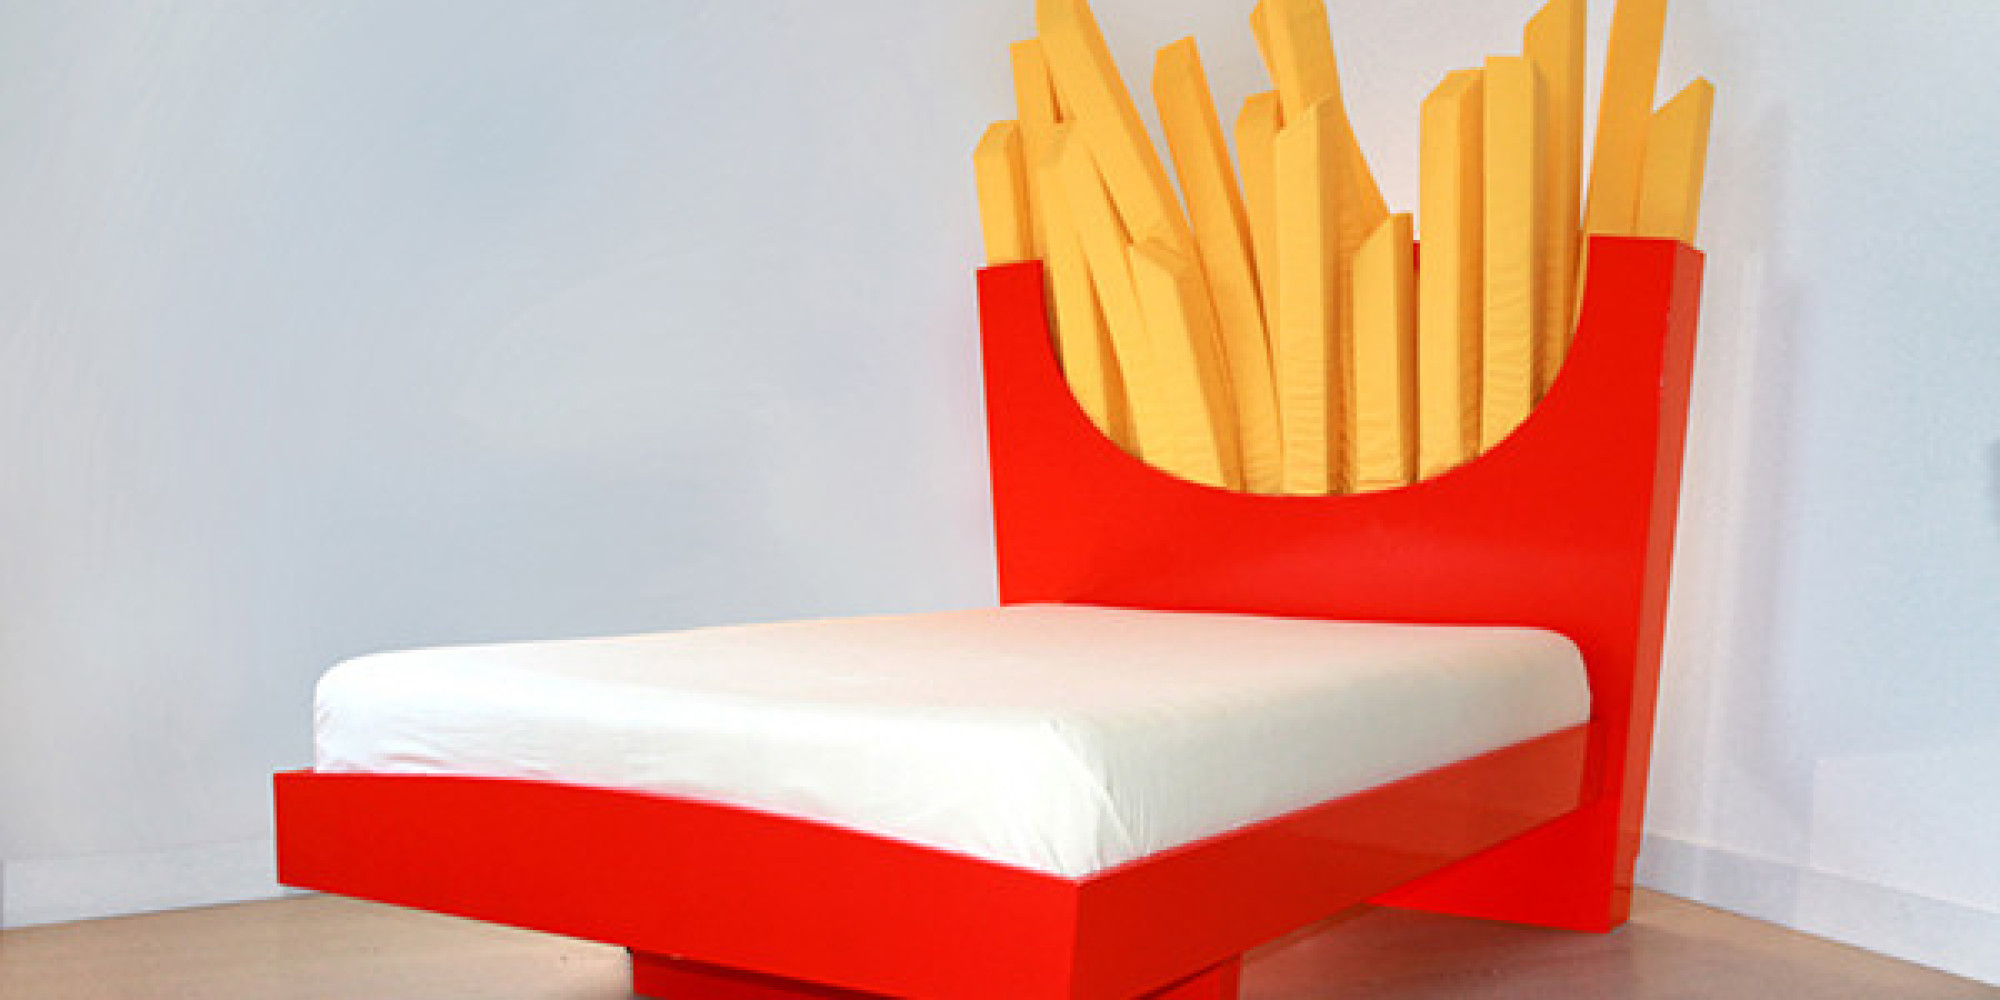 Supersized Bed Promises Dreams Of Fries Dancing Through